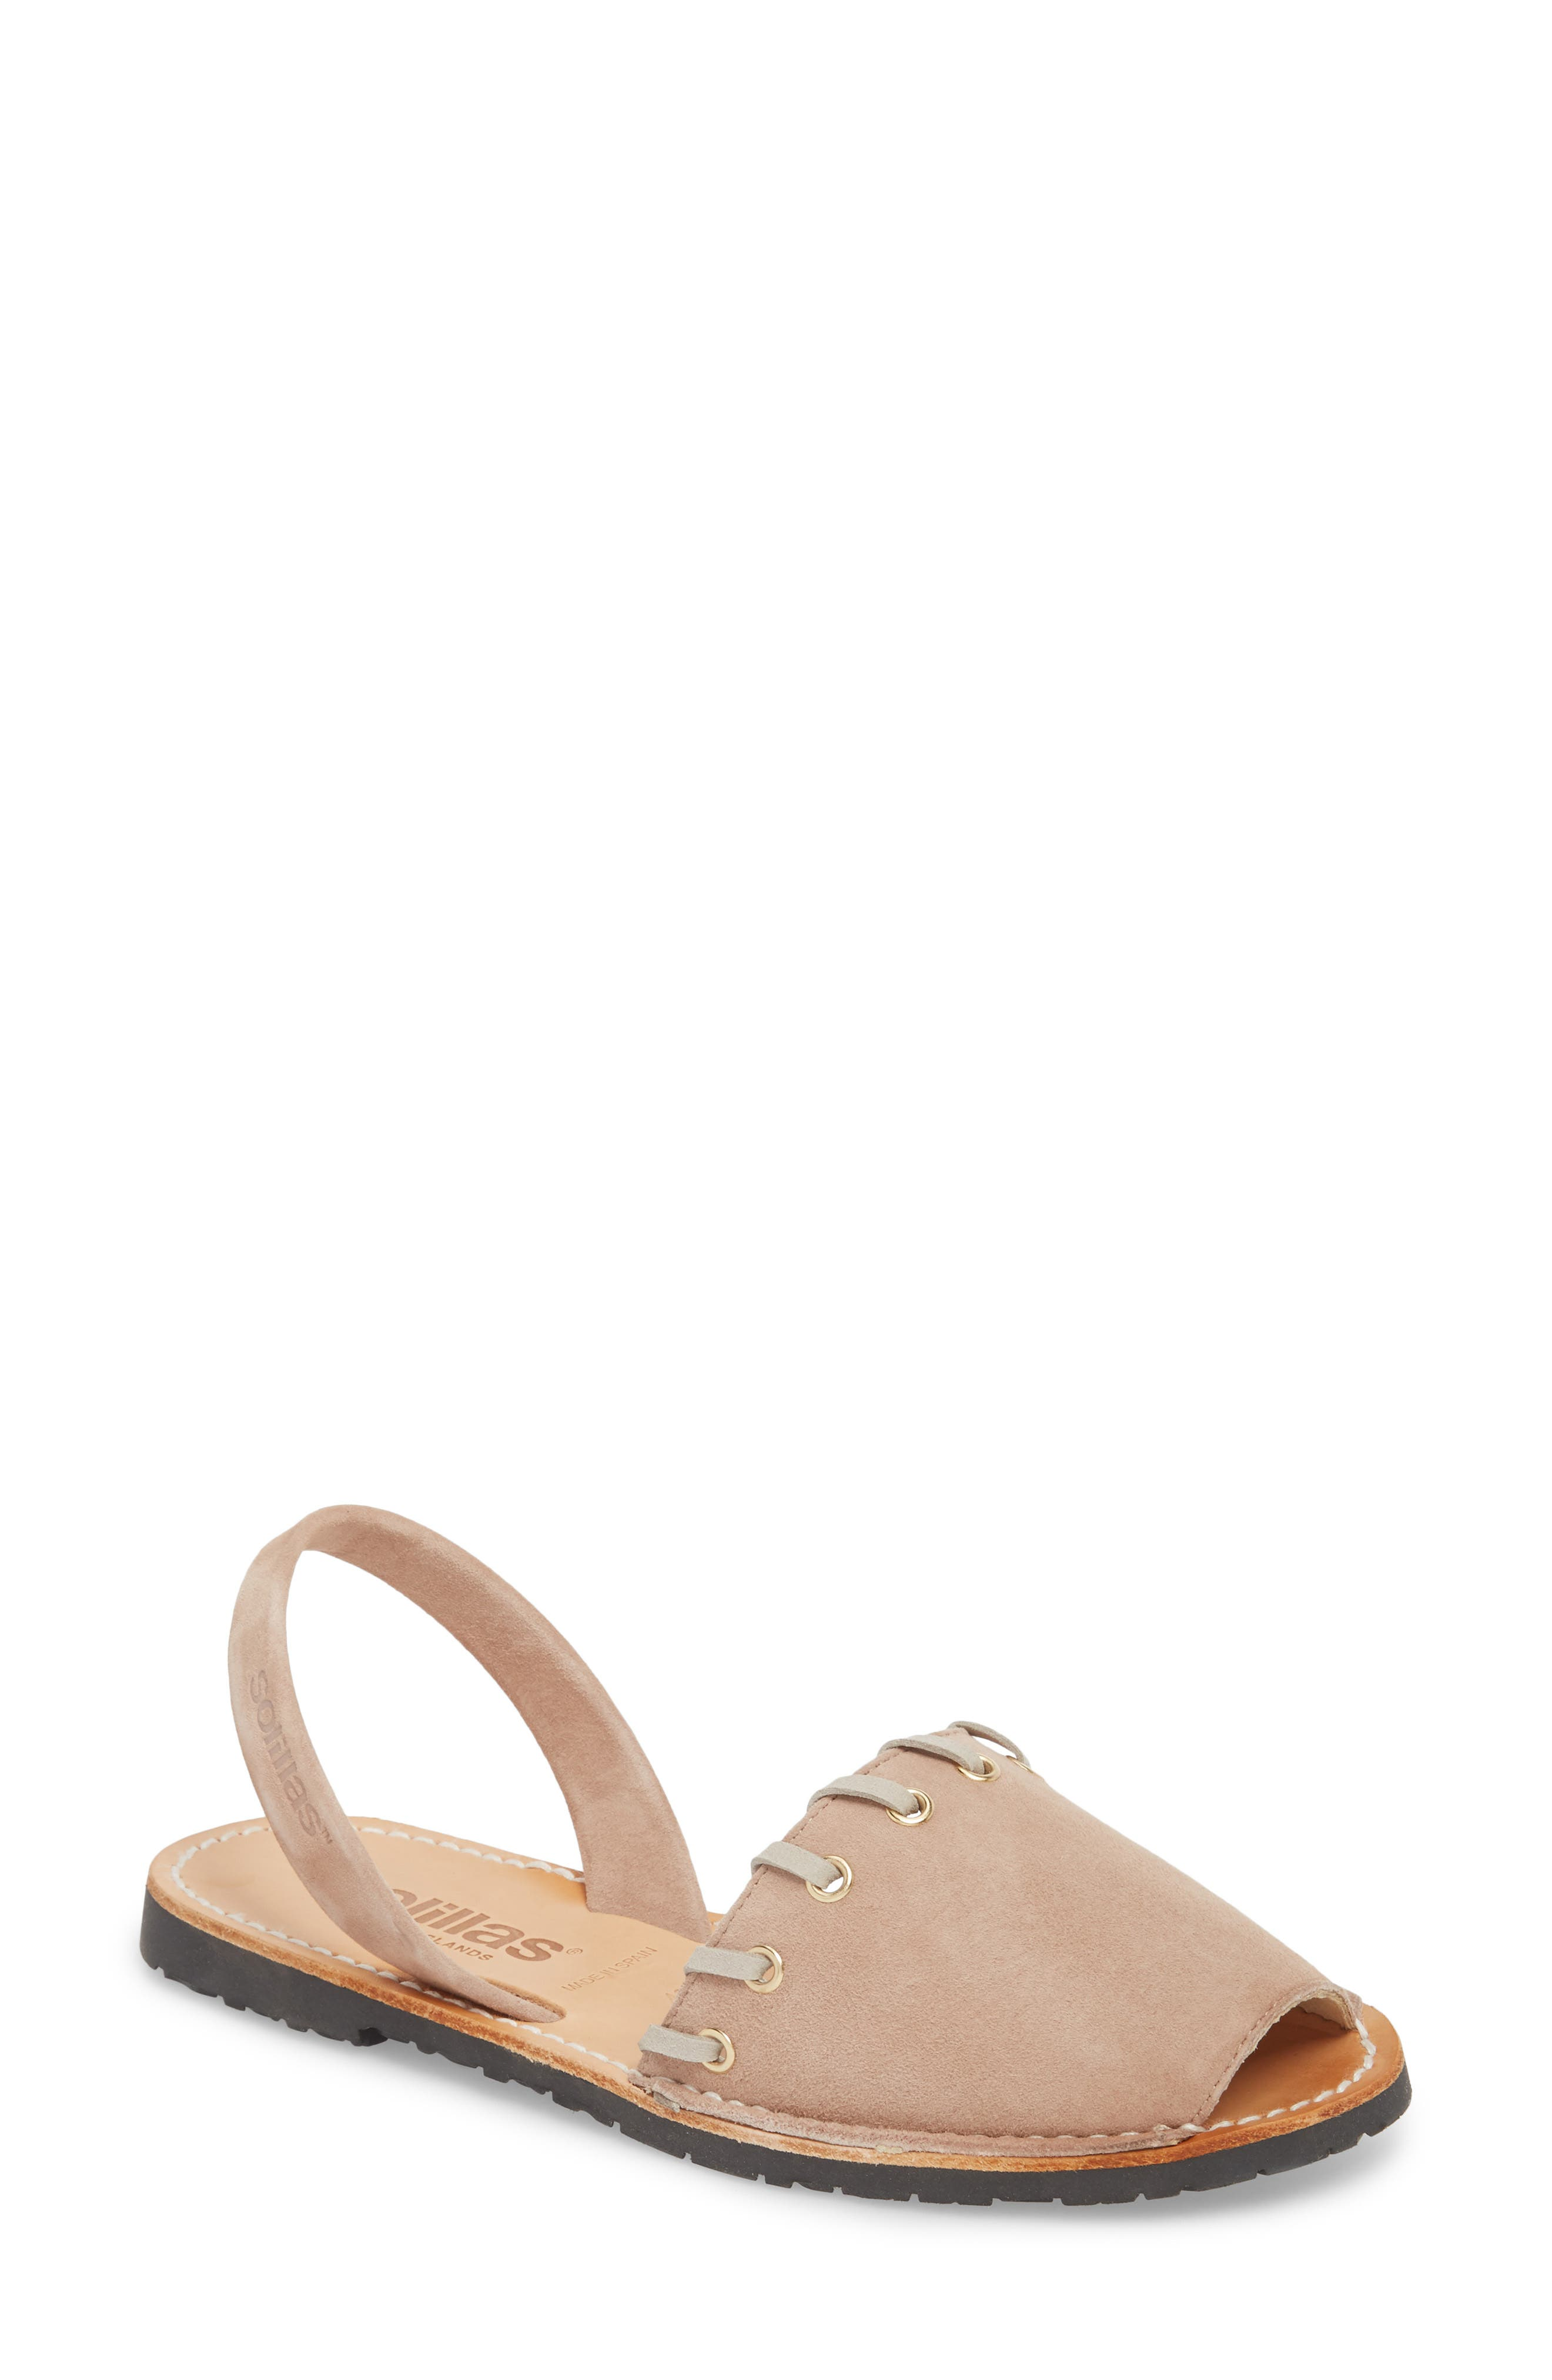 Whipstitched Flat Sandal,                             Main thumbnail 1, color,